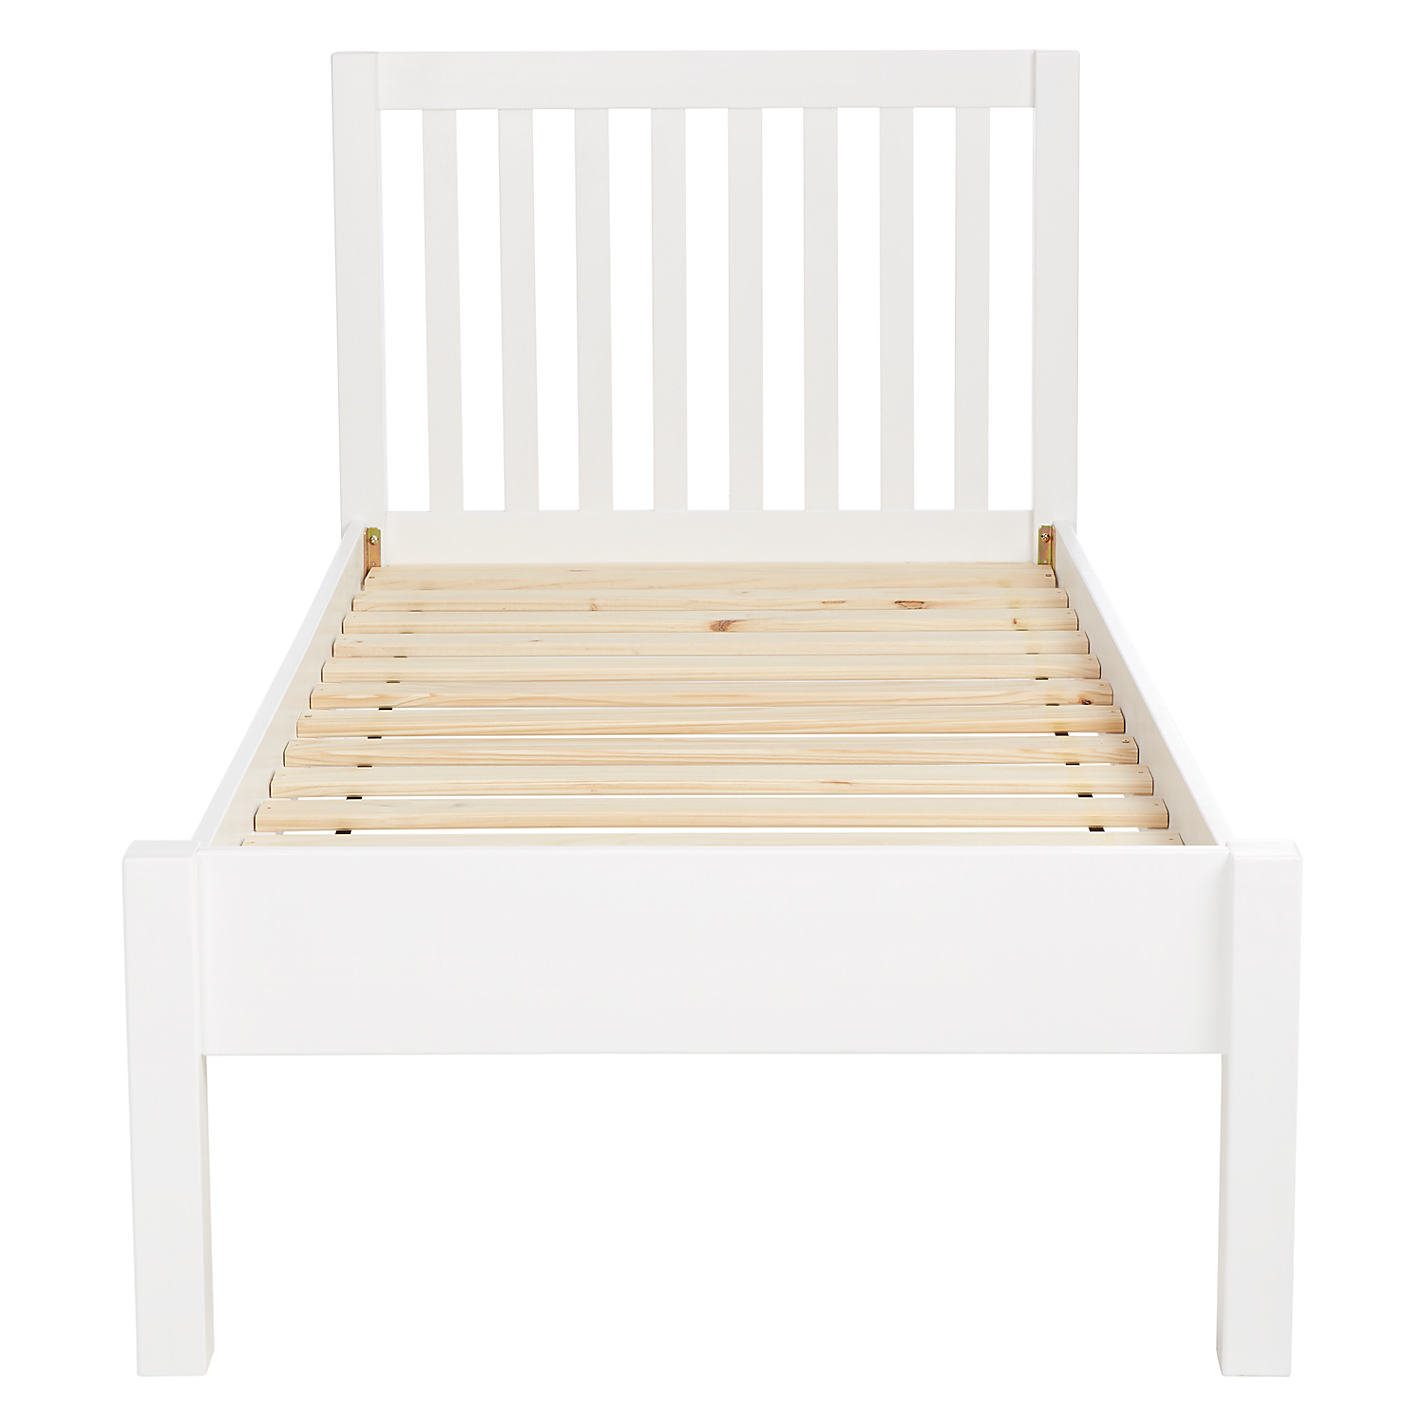 White Bed Frames buy john lewis wilton child compliant bed frame, single | john lewis